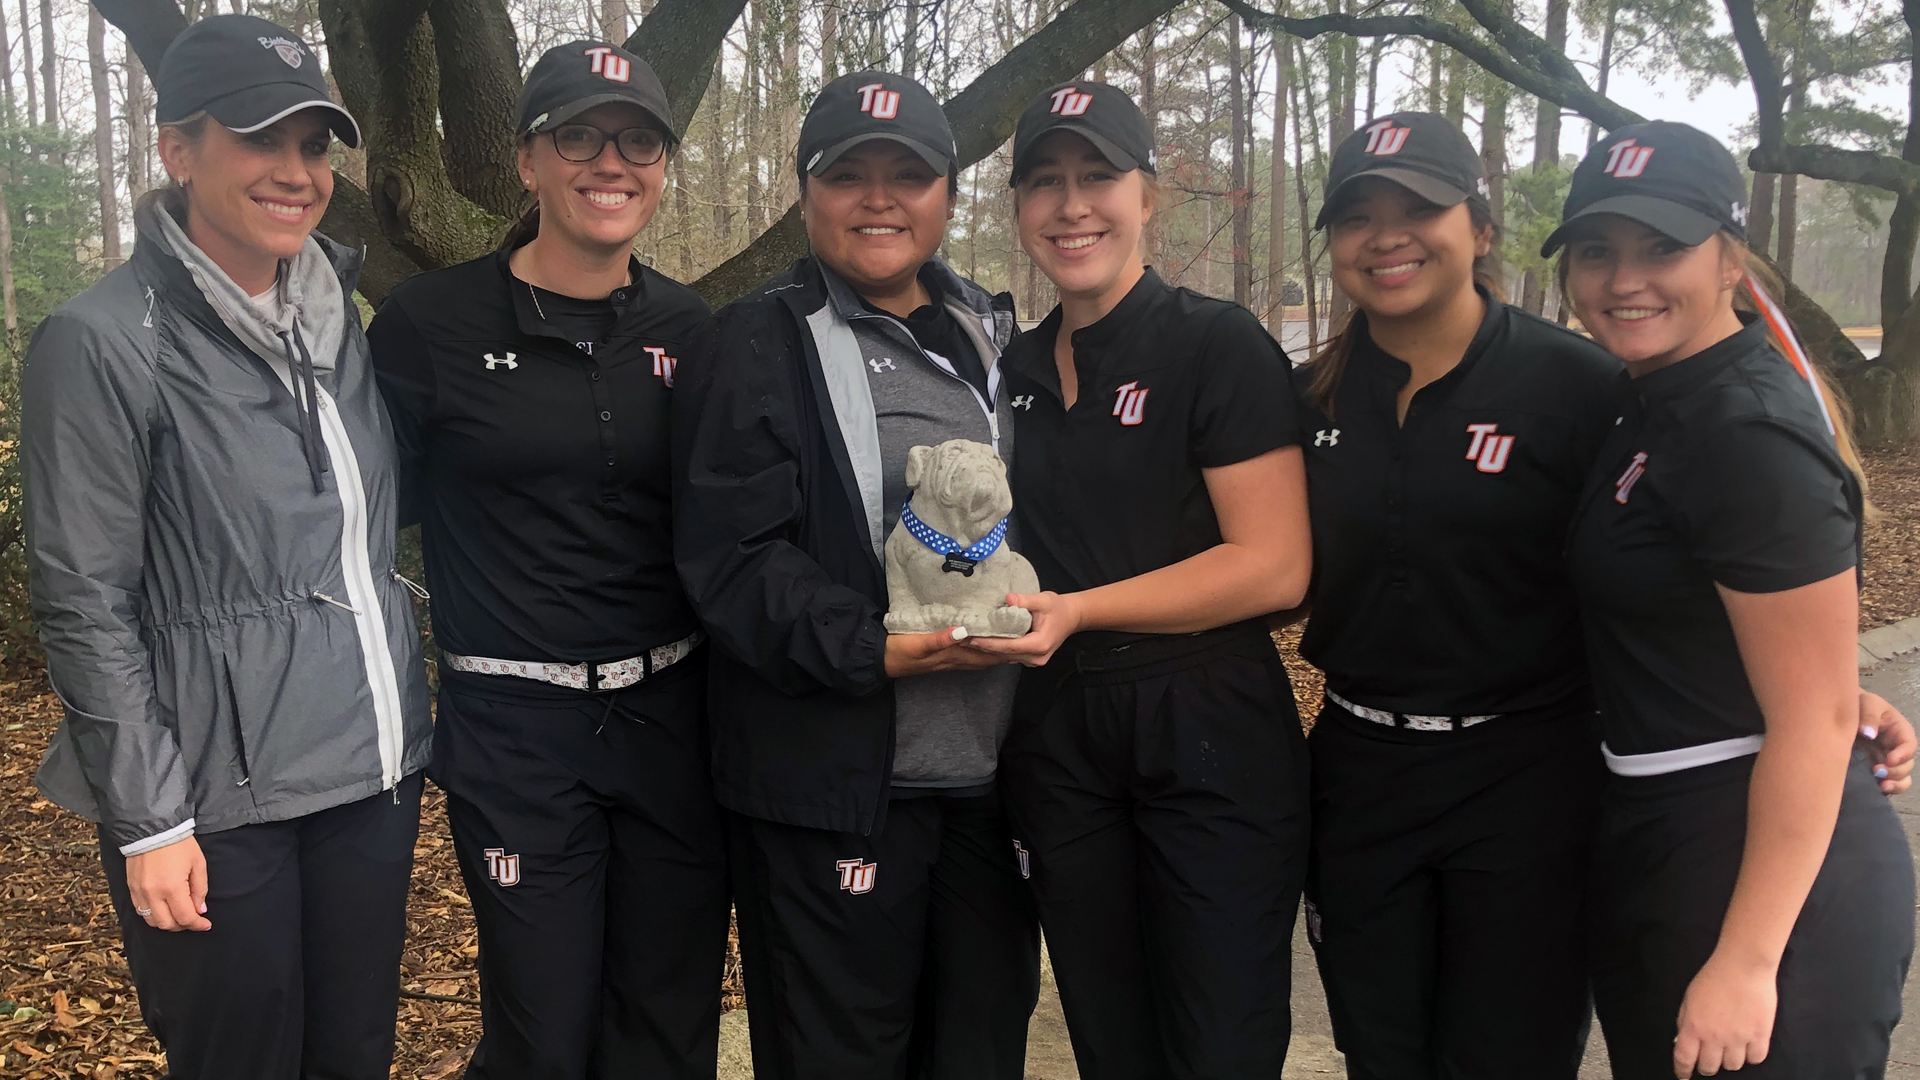 Tusculum rallies to win Barton Intercollegiate, Keim goes wire-to-wire to capture medalist honors